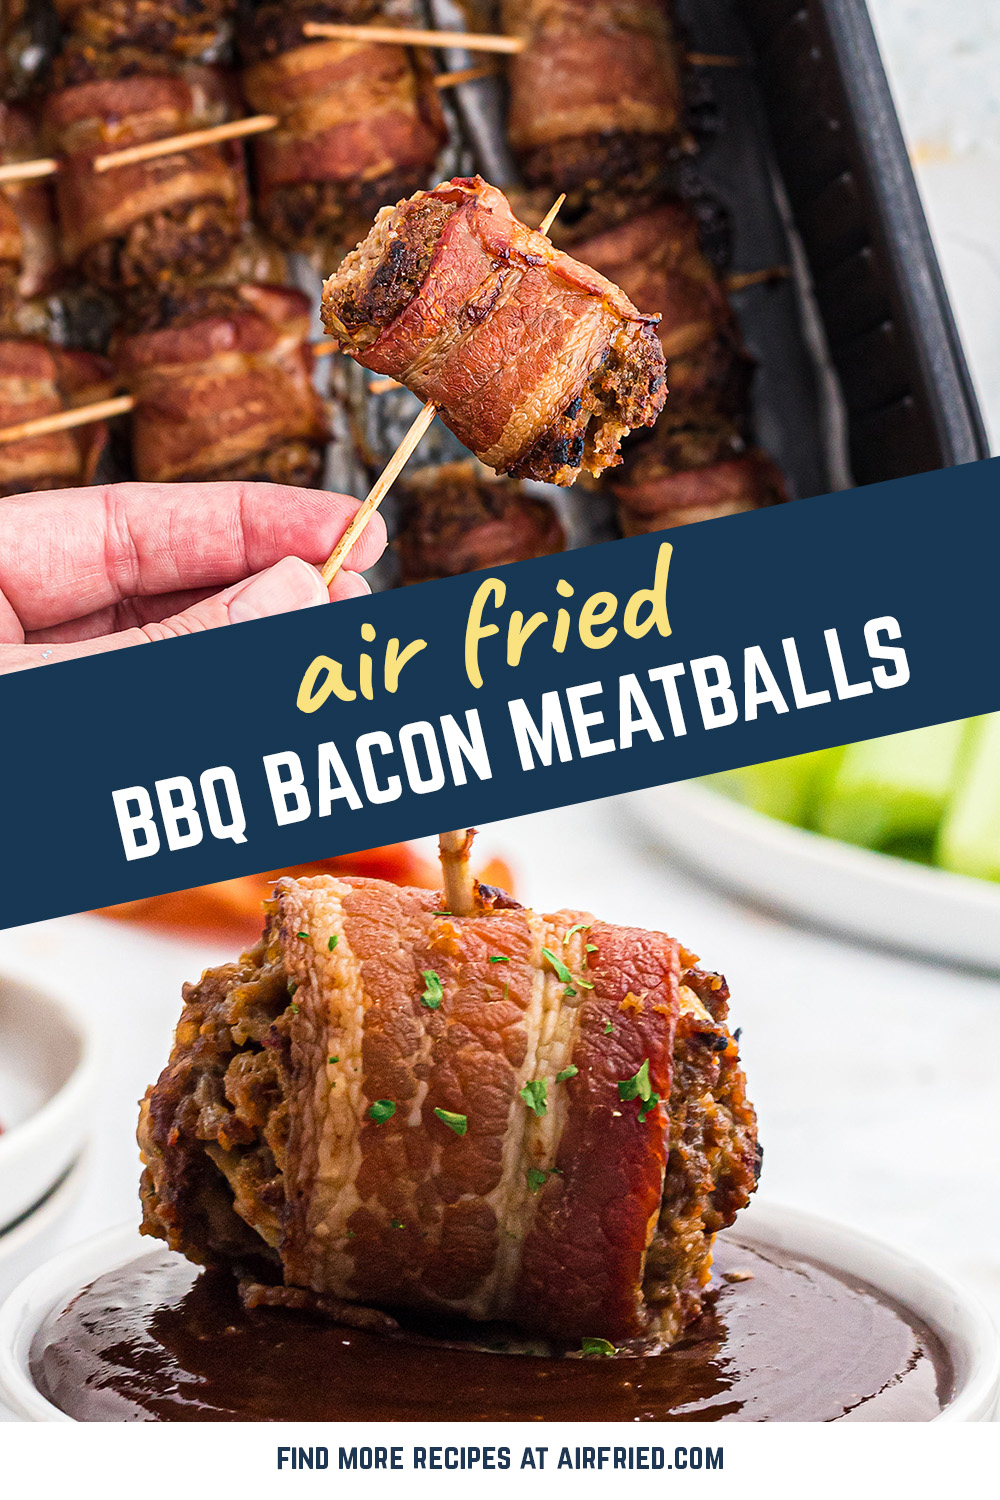 These air fryer meatballs are wrapped in bacon and dunked in barbecue for the perfect appetizer or snack.